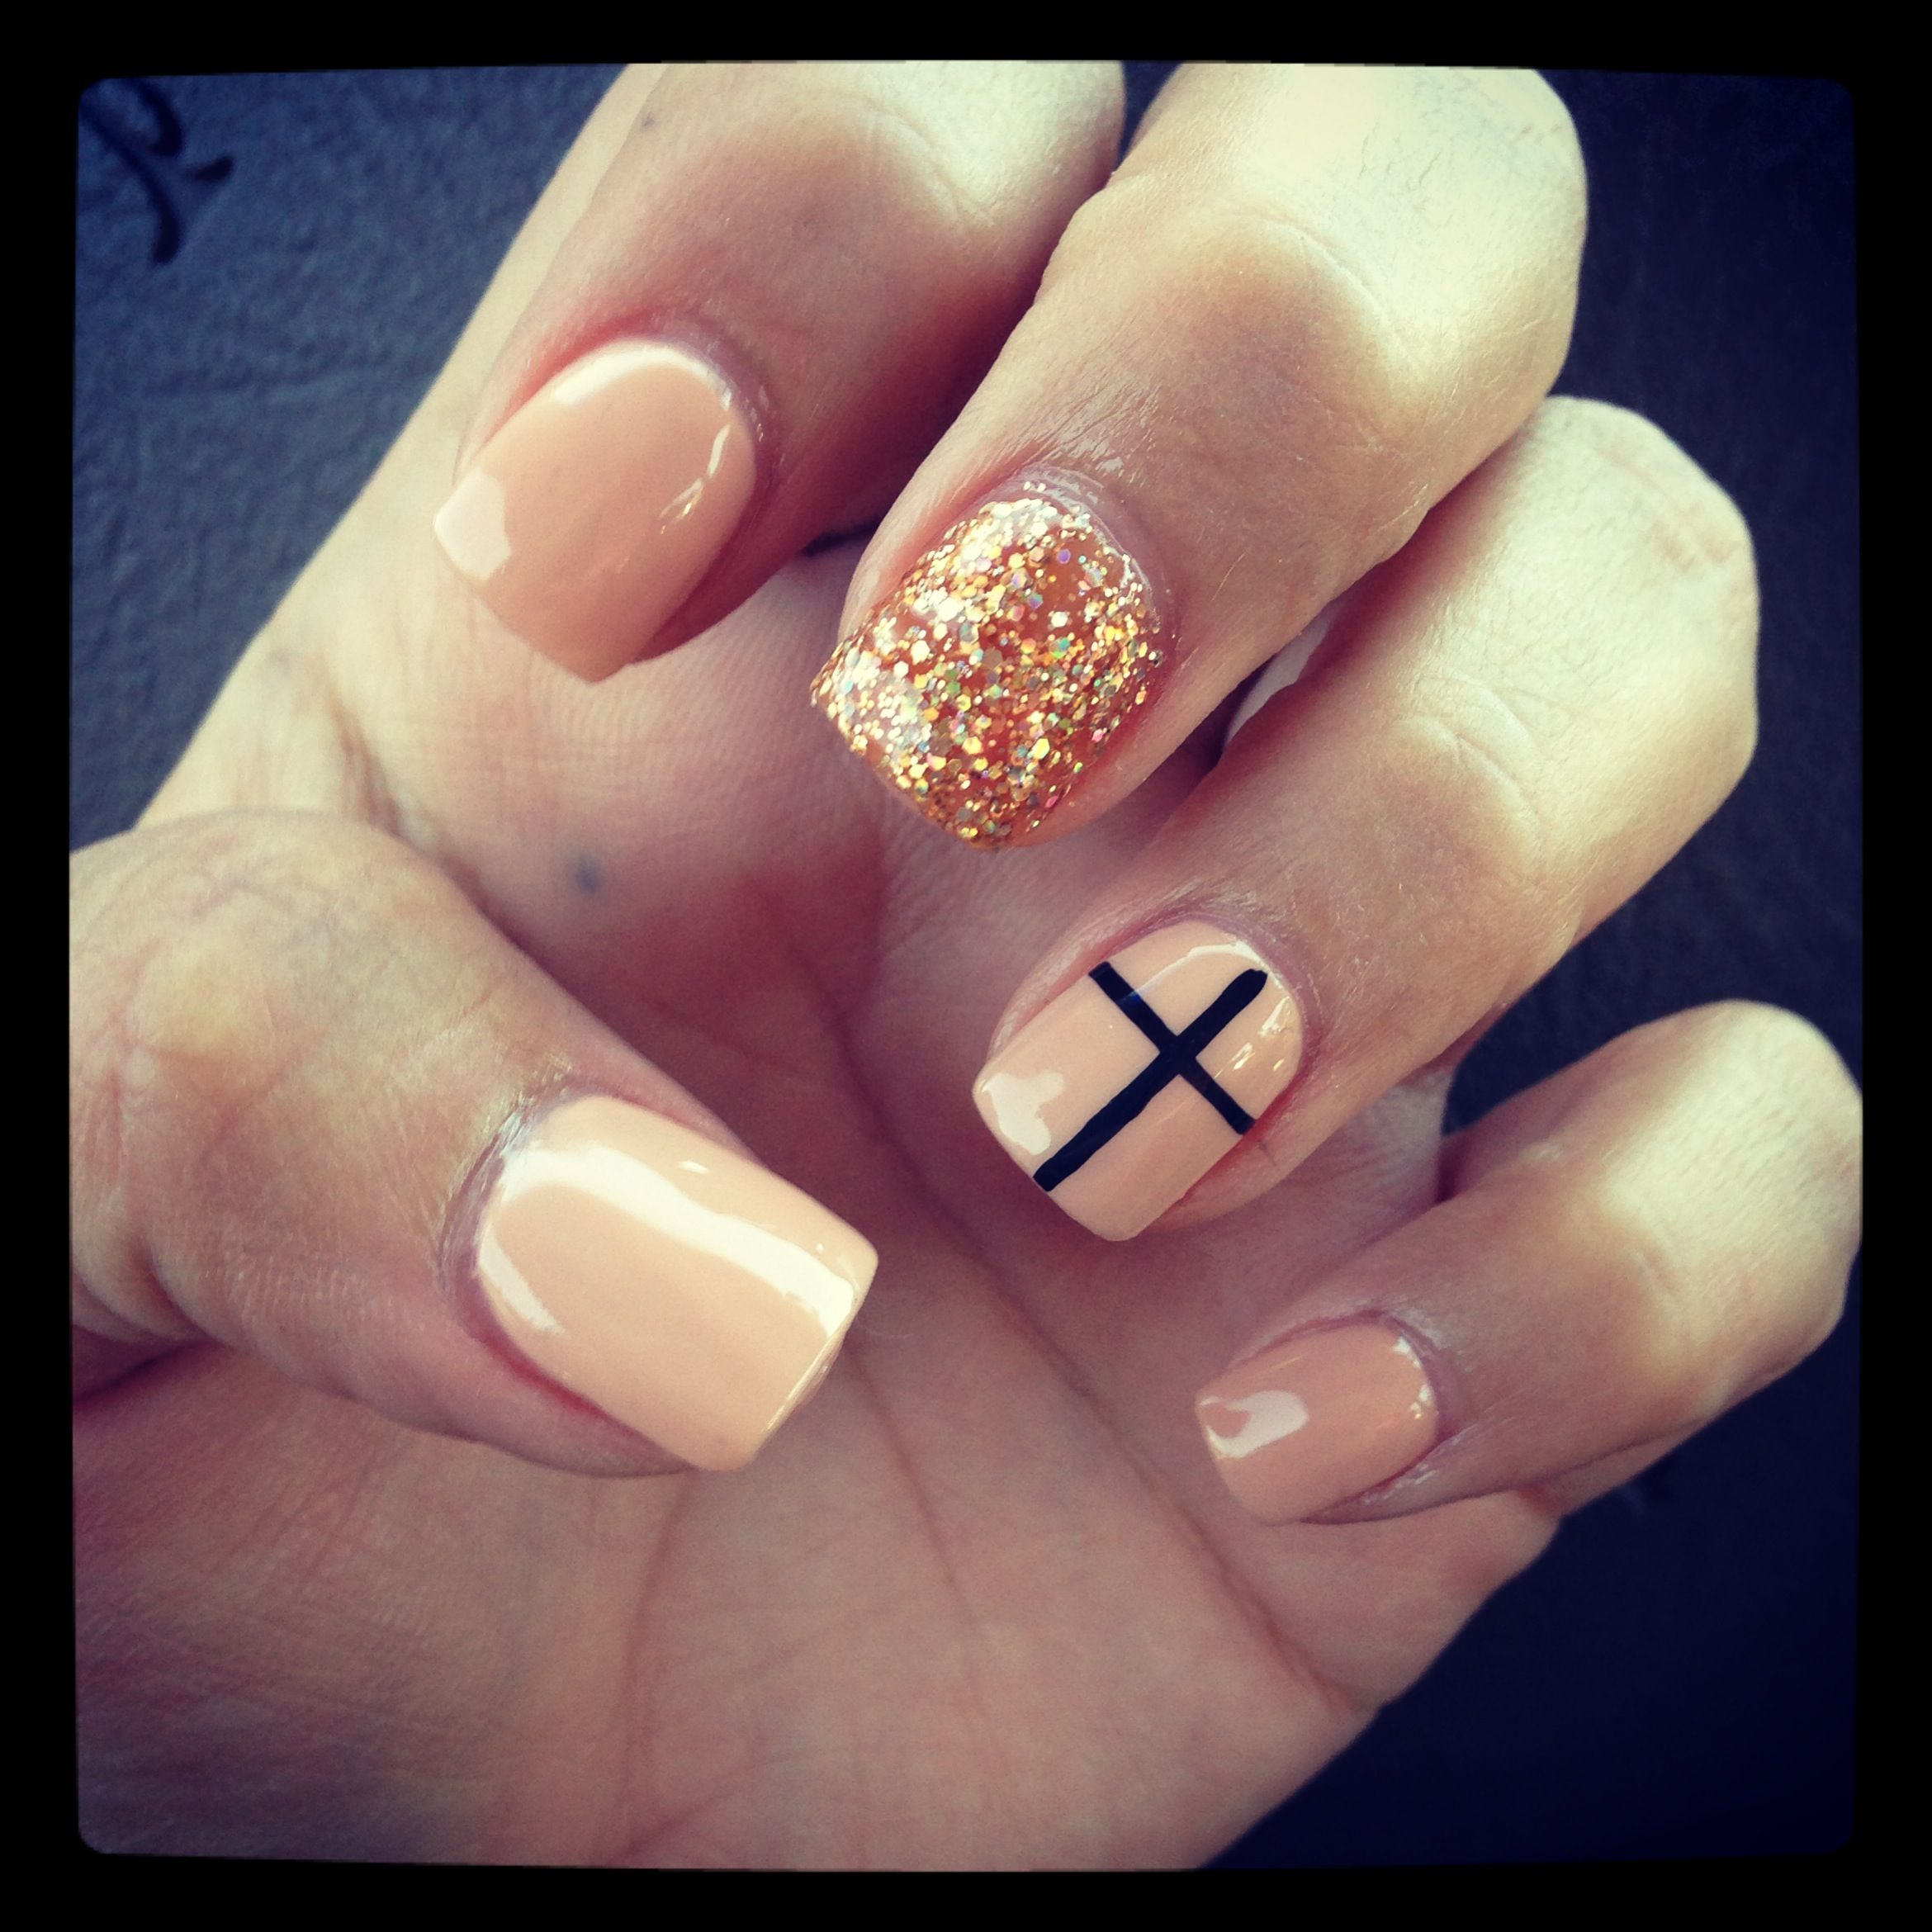 Acrylic Nail Designs With Crosses: Best 25+ Gold Glitter Nails Ideas On Pinterest